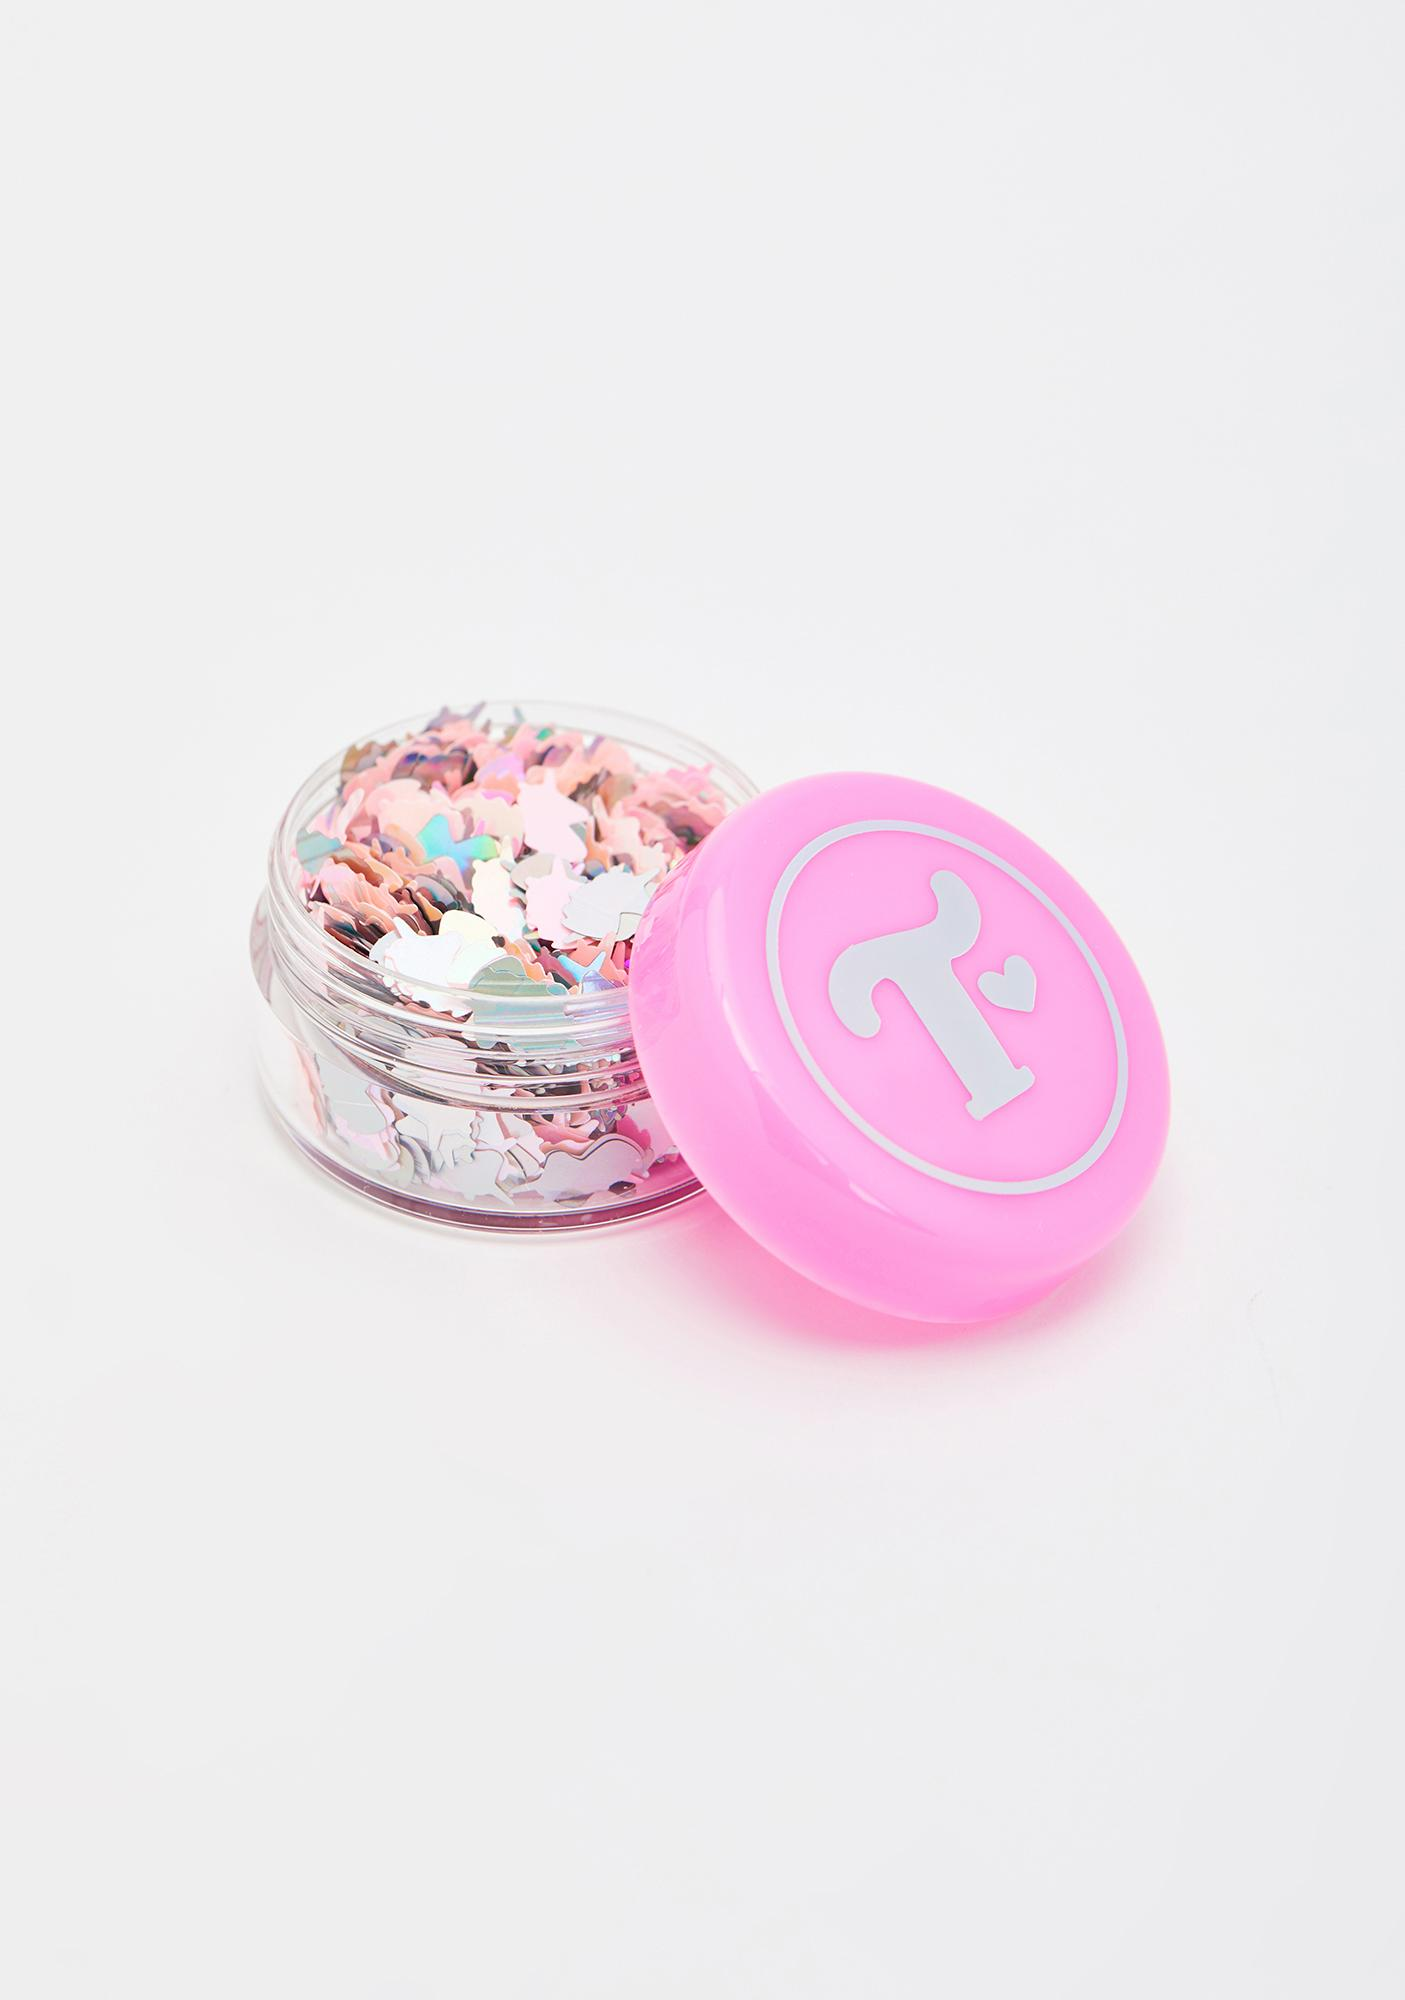 Trixie Cosmetics Pony Up Sprinkles Loose Glitter